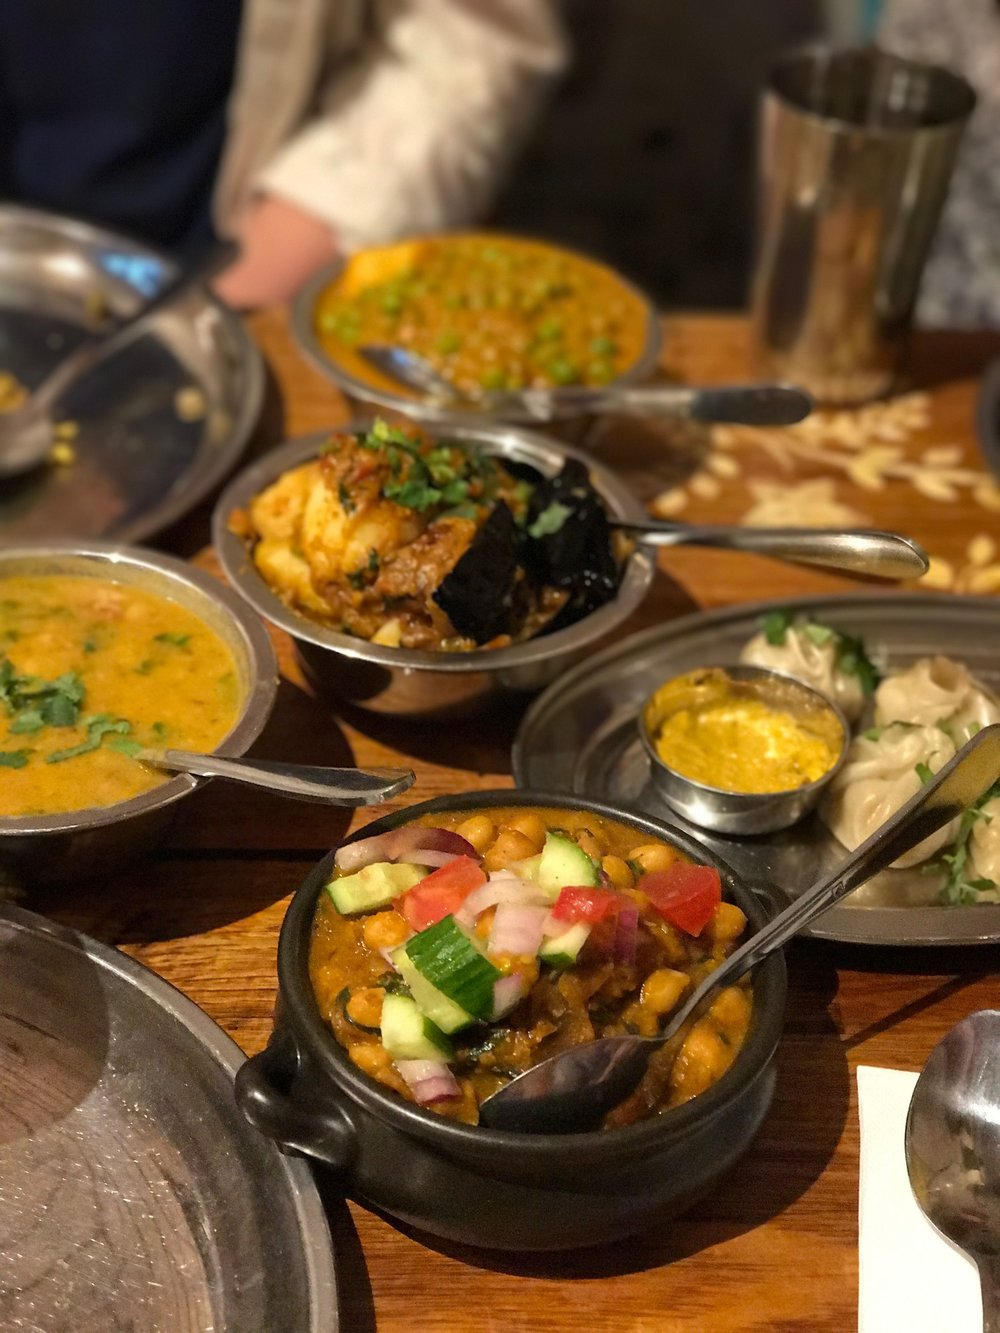 mukka_restaurant_best_vegan_indian_food_melbourne.jpg